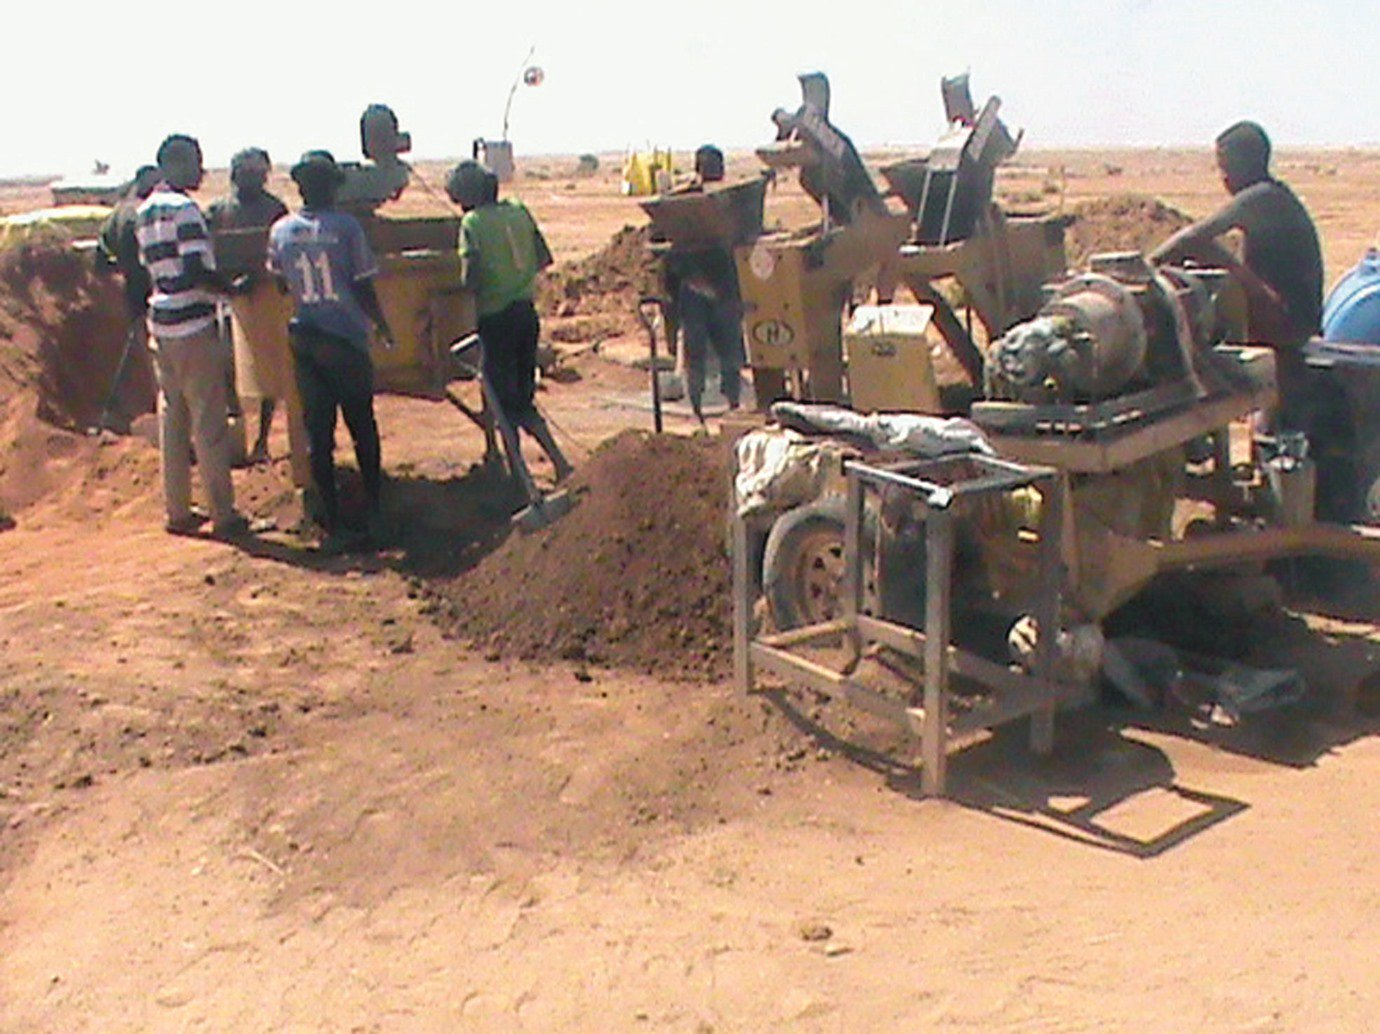 QRCS and QFFD launch development projects in Darfur